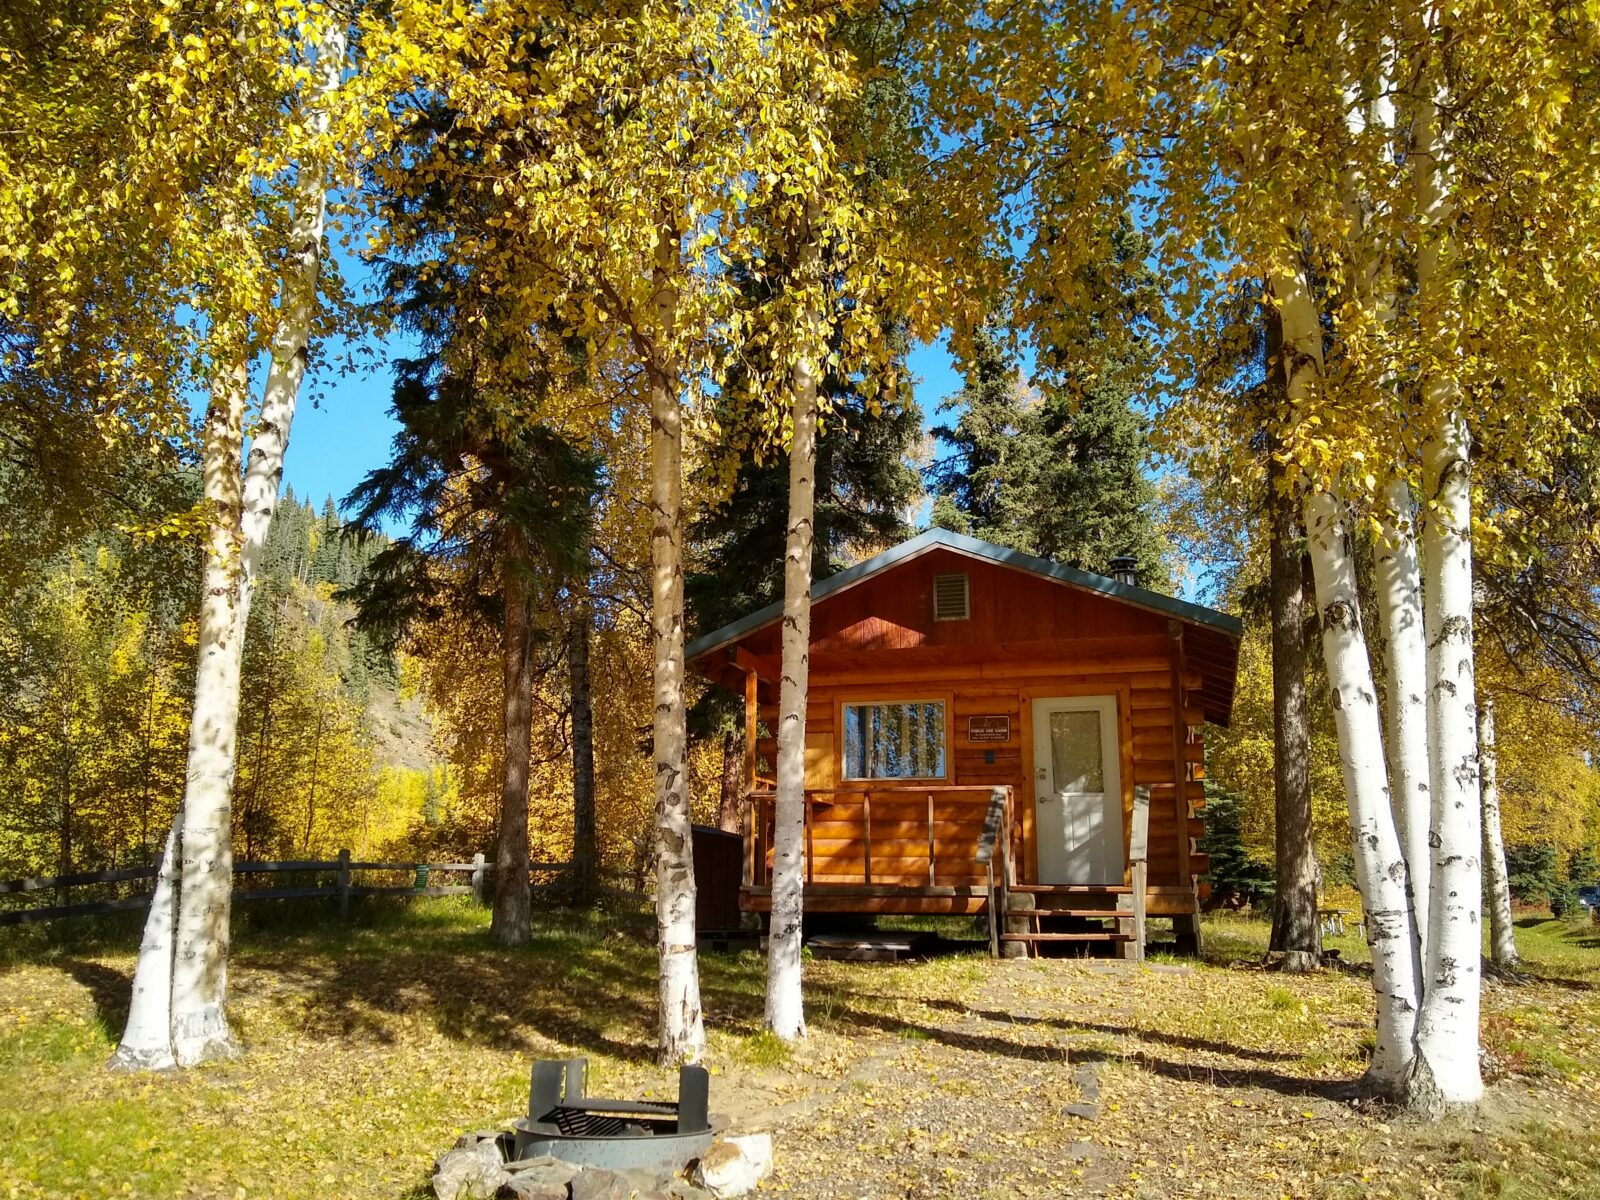 One of the most unique things to do in Fairbanks is to stay at one of Alaska's many public use cabins. A small wooden cabin in golden birch trees with a firepit in front